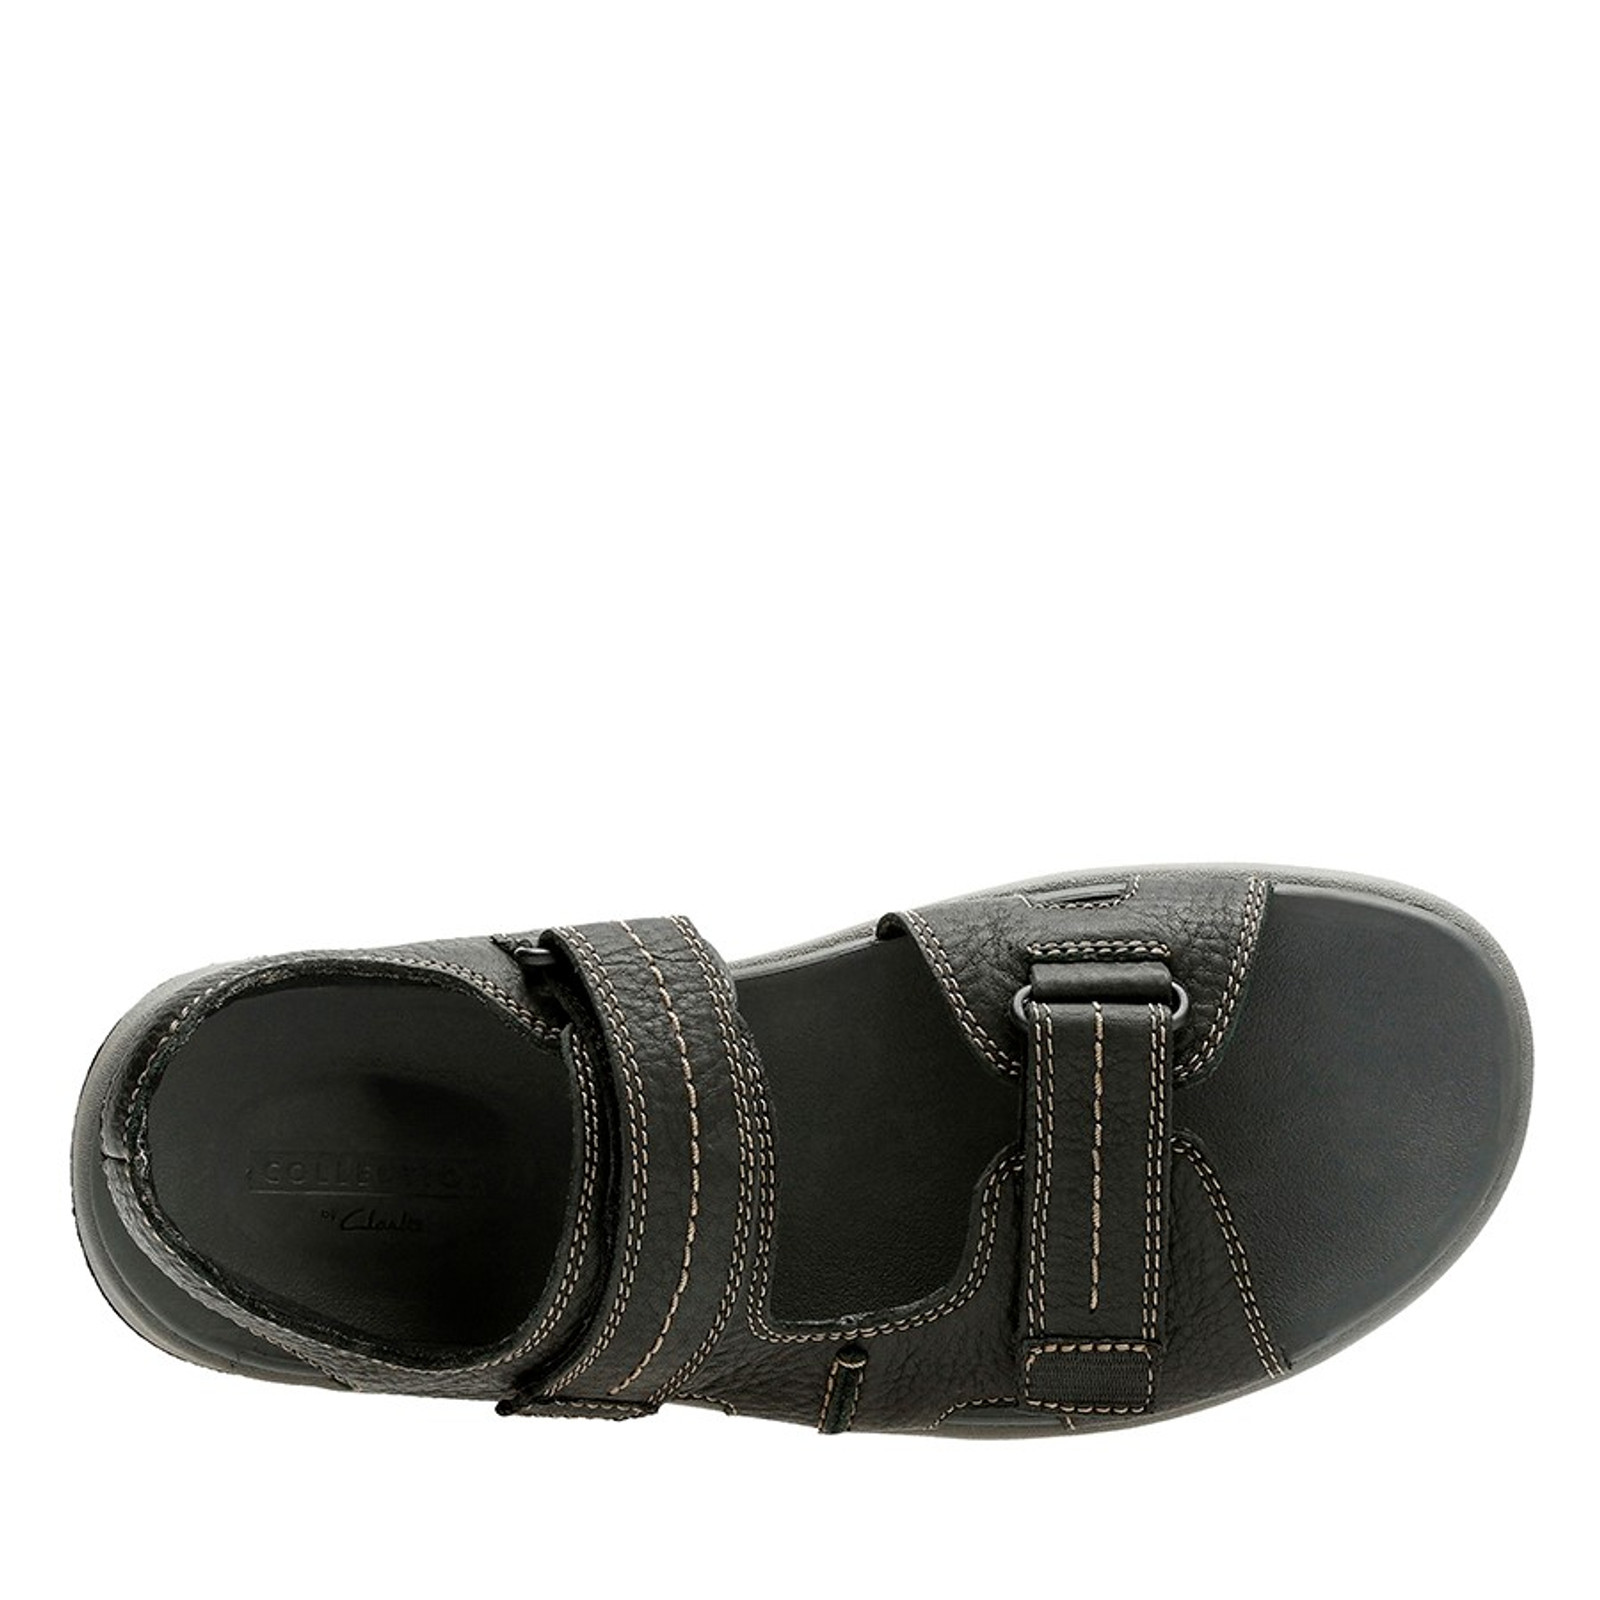 Clarks Mens BRIXBY SHORE Black Leather